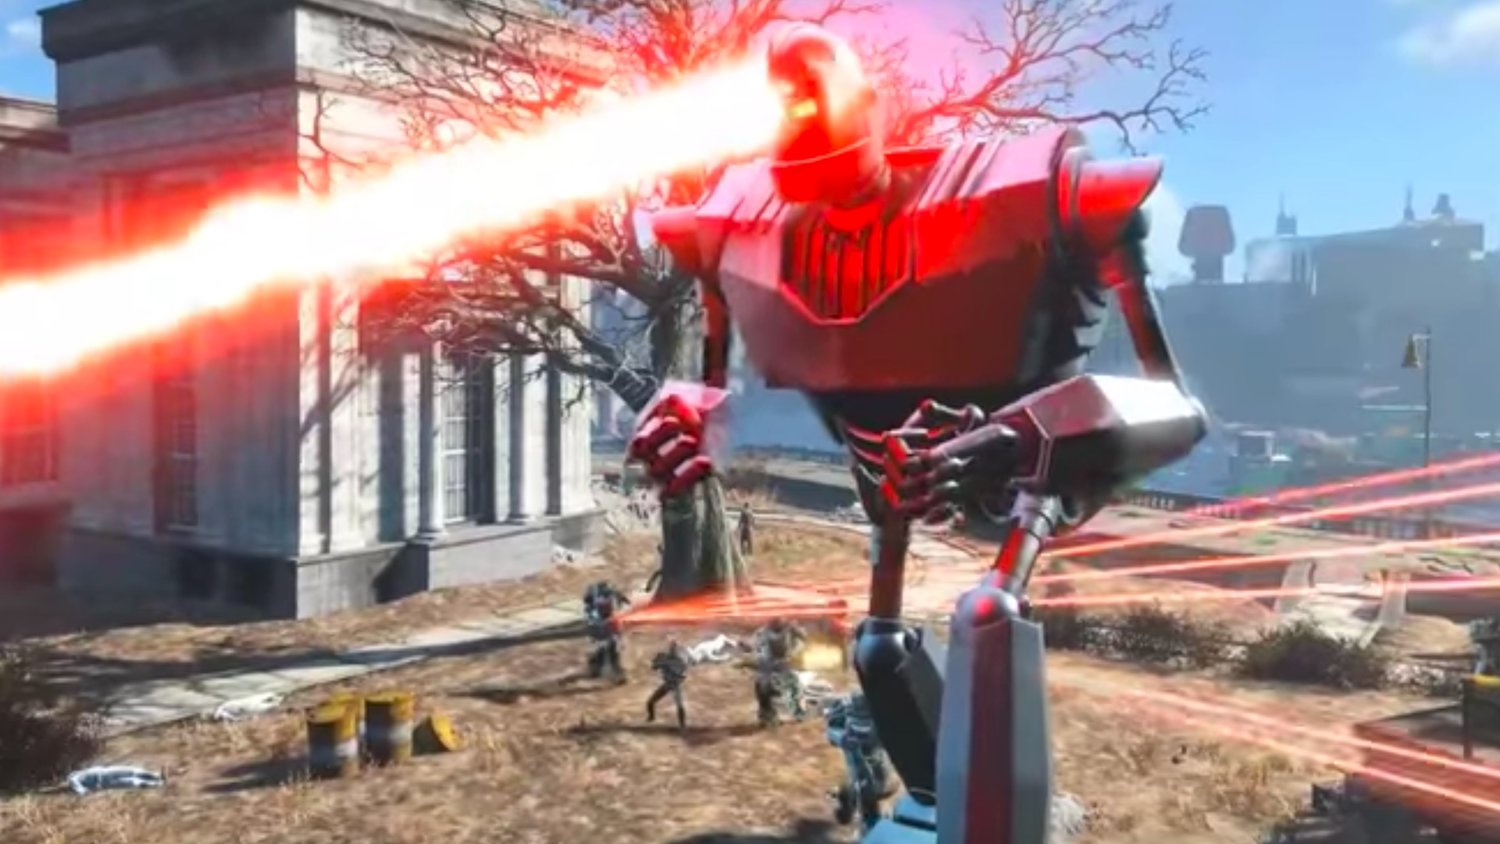 Watch THE IRON GIANT Go on a Rampage in FALLOUT 4